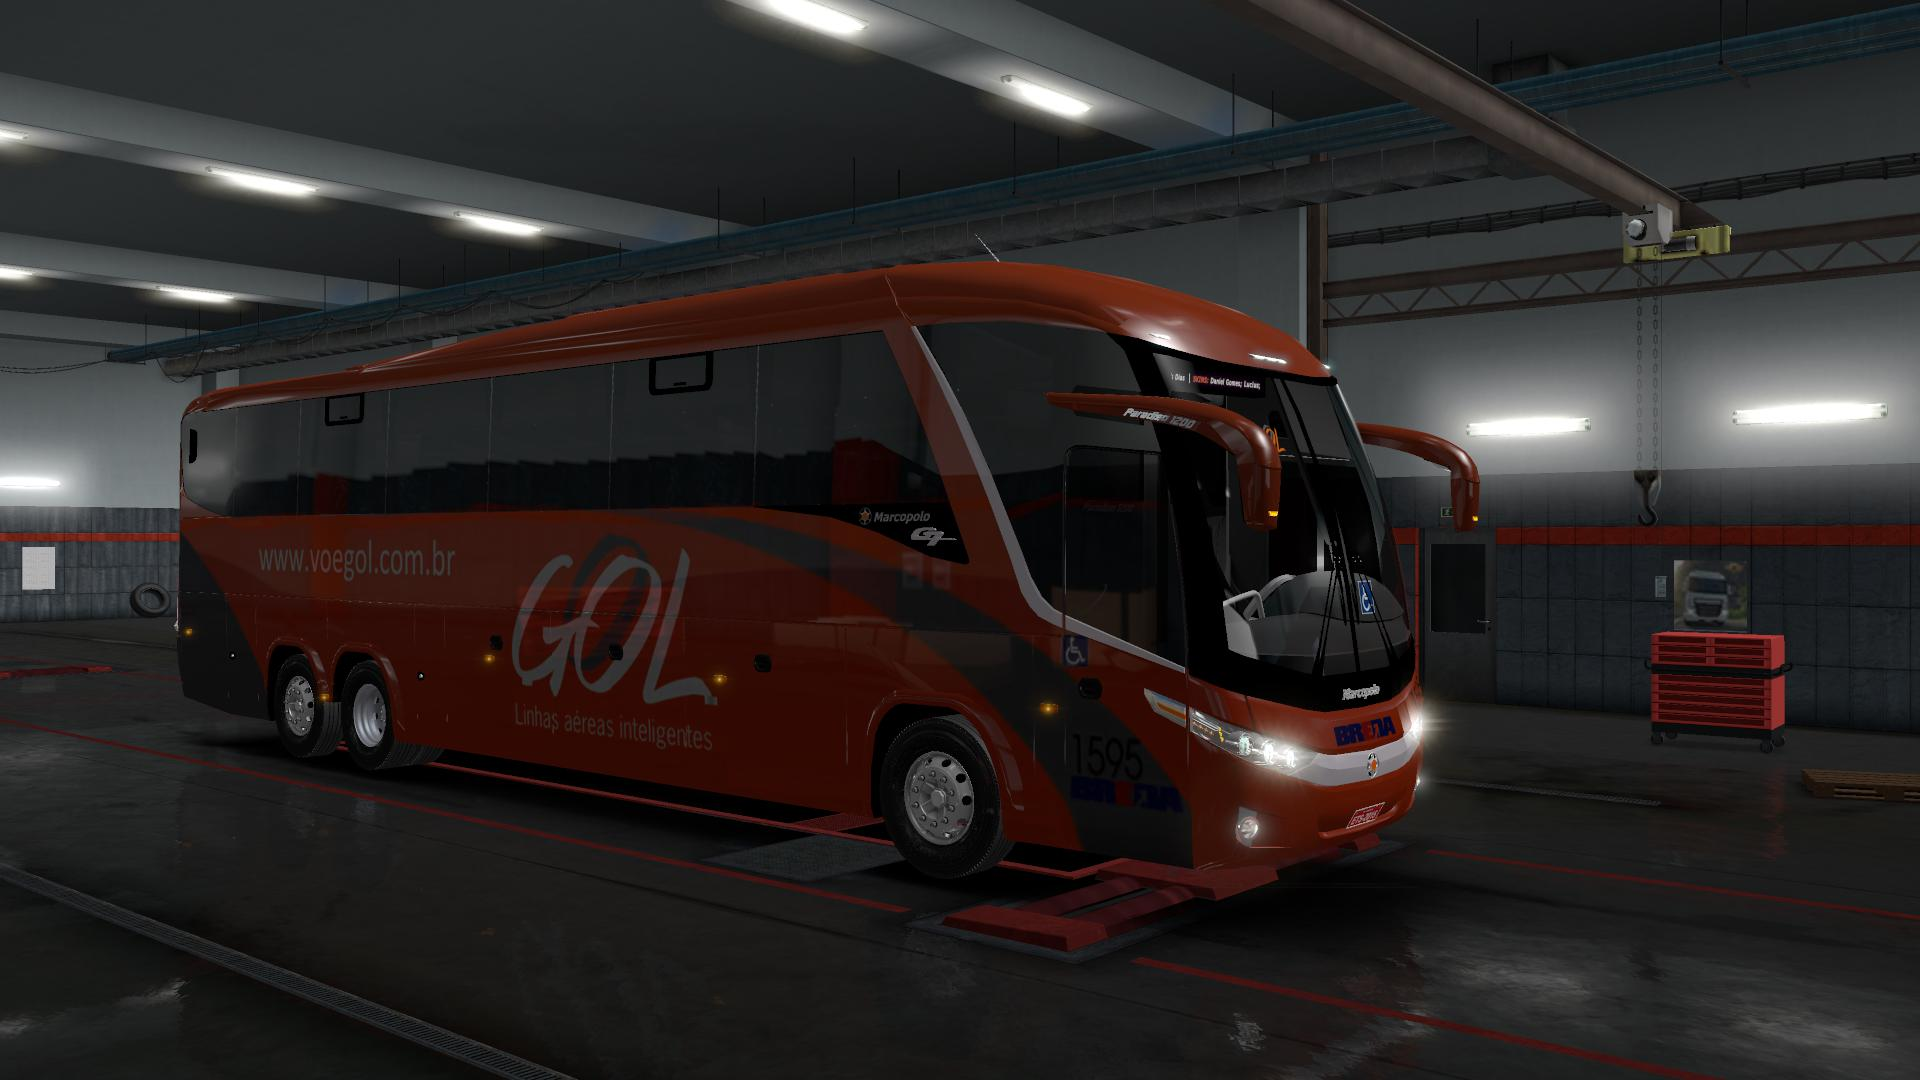 ETS2 - Marcopolo G7 1200 MB 6x2 Serie-1 (1.36.x)